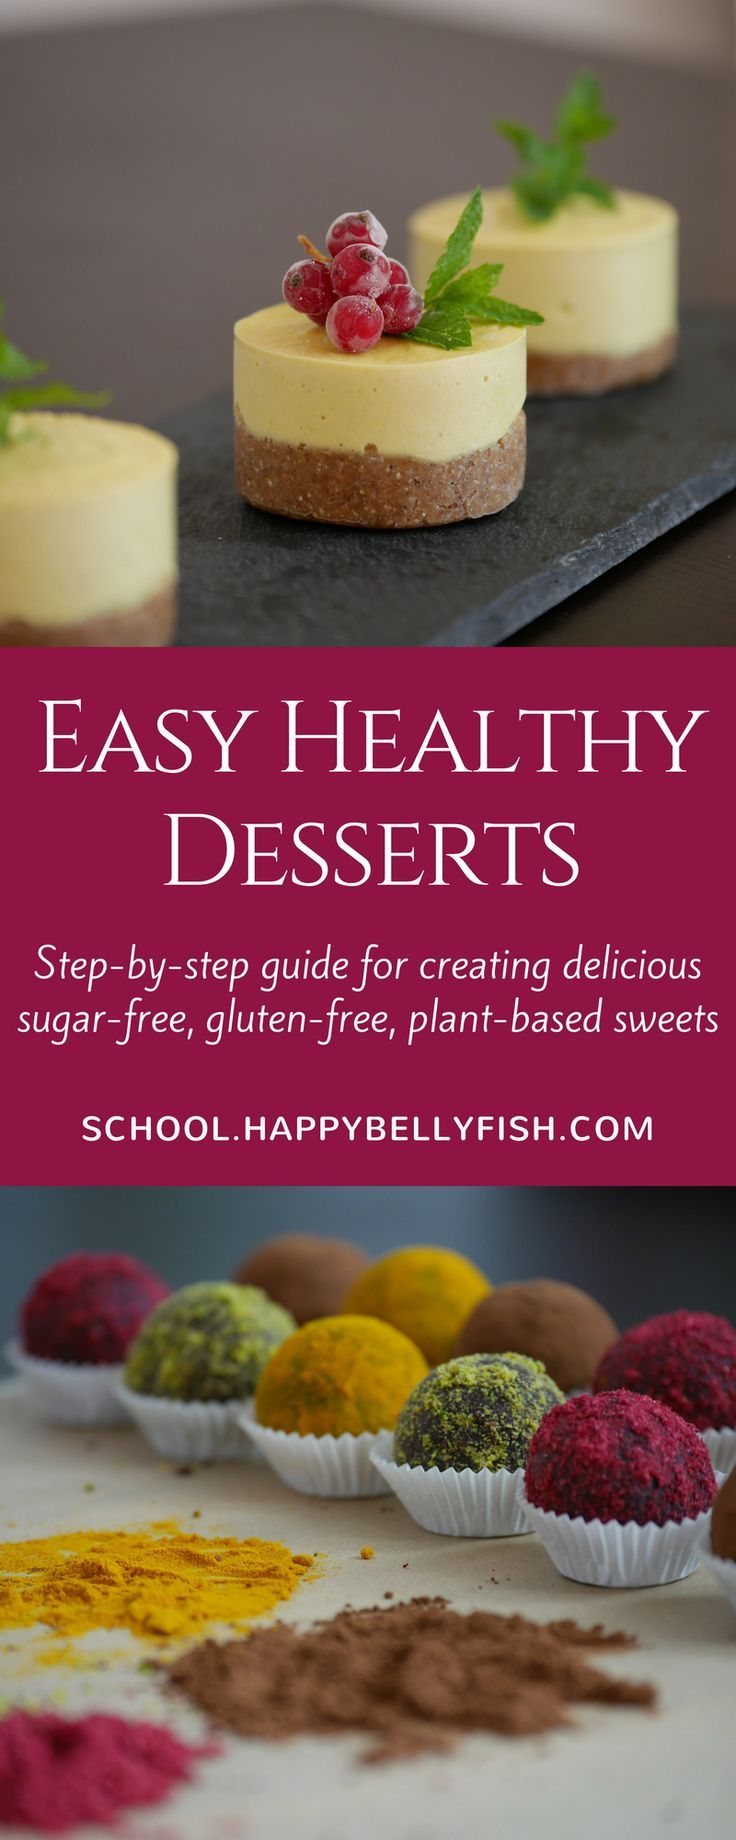 Healthy Sugar Free Desserts Step By Step Guide For Creating